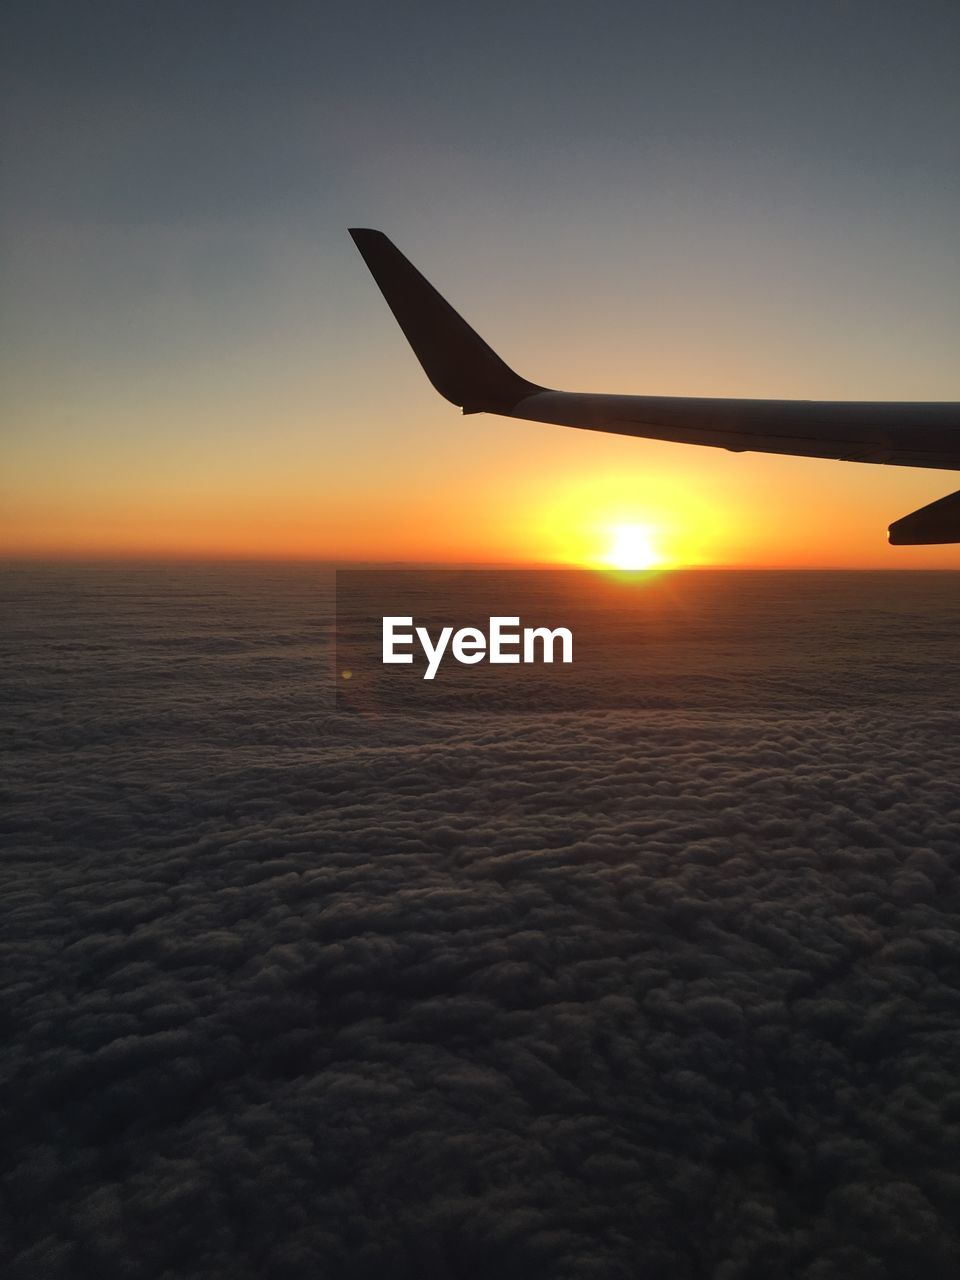 sky, sunset, air vehicle, airplane, scenics - nature, flying, beauty in nature, mid-air, mode of transportation, aircraft wing, transportation, nature, sun, cloud - sky, no people, travel, silhouette, outdoors, tranquil scene, journey